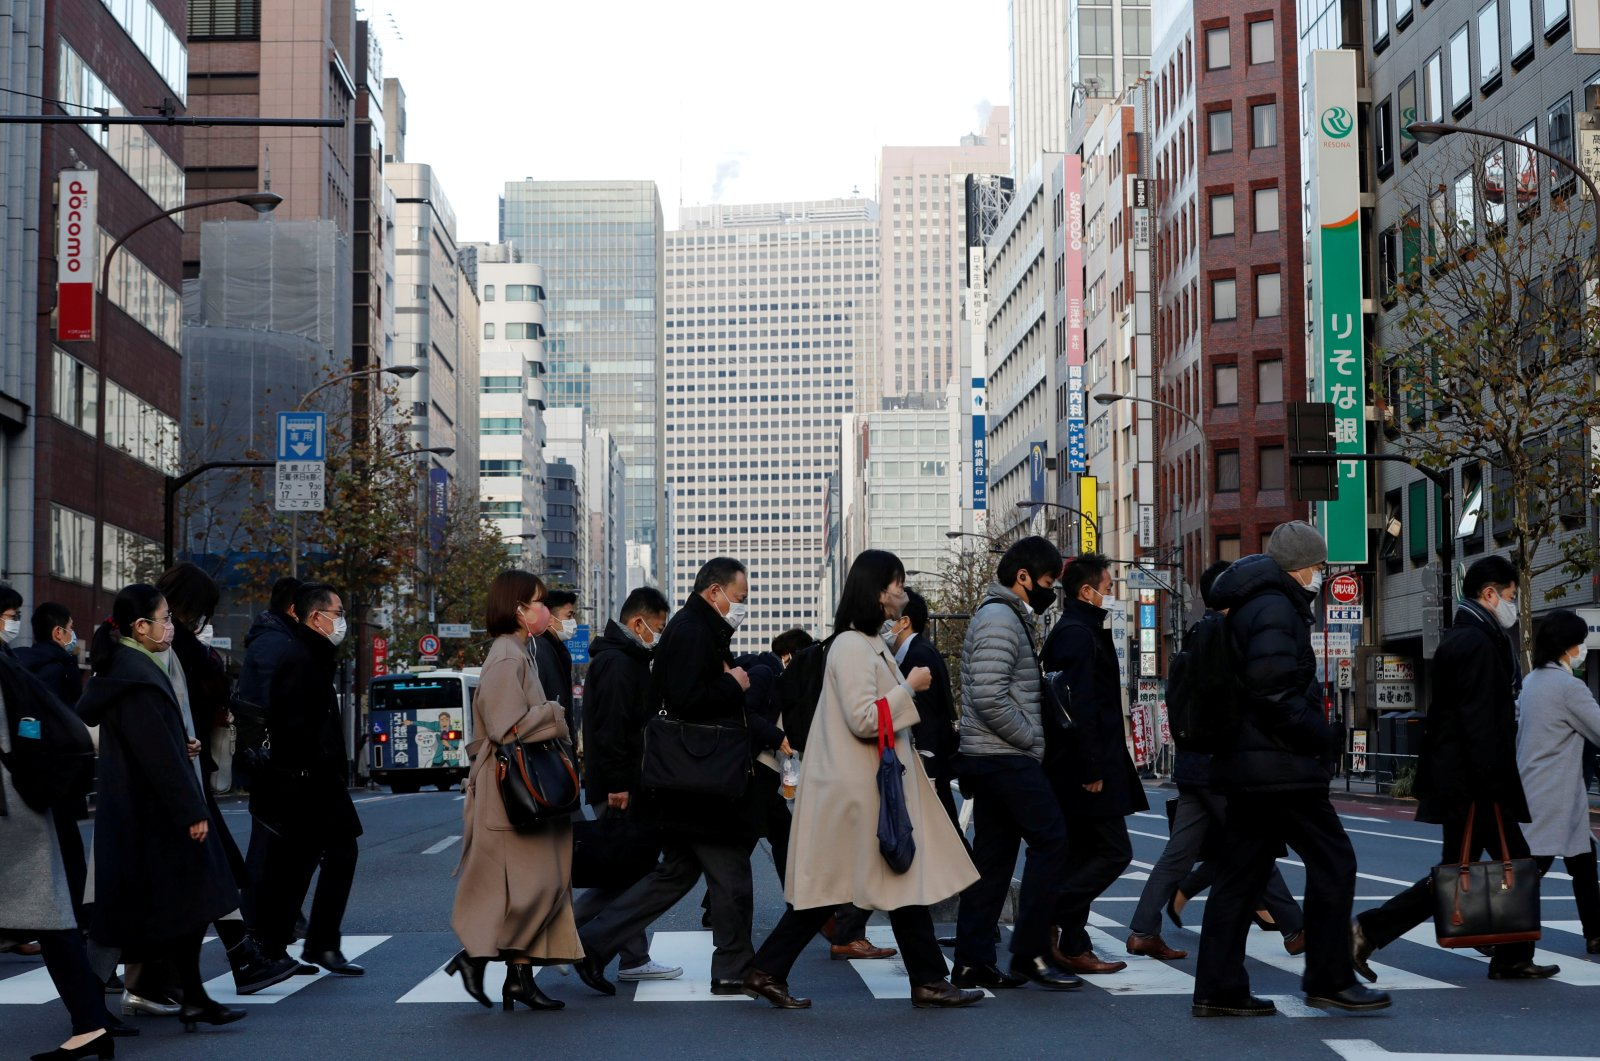 Pedestrians wearing protective masks following the COVID-19 outbreak make their way during rush hour at a business district in Tokyo, Japan, Jan. 7, 2021. (Reuters Photo)